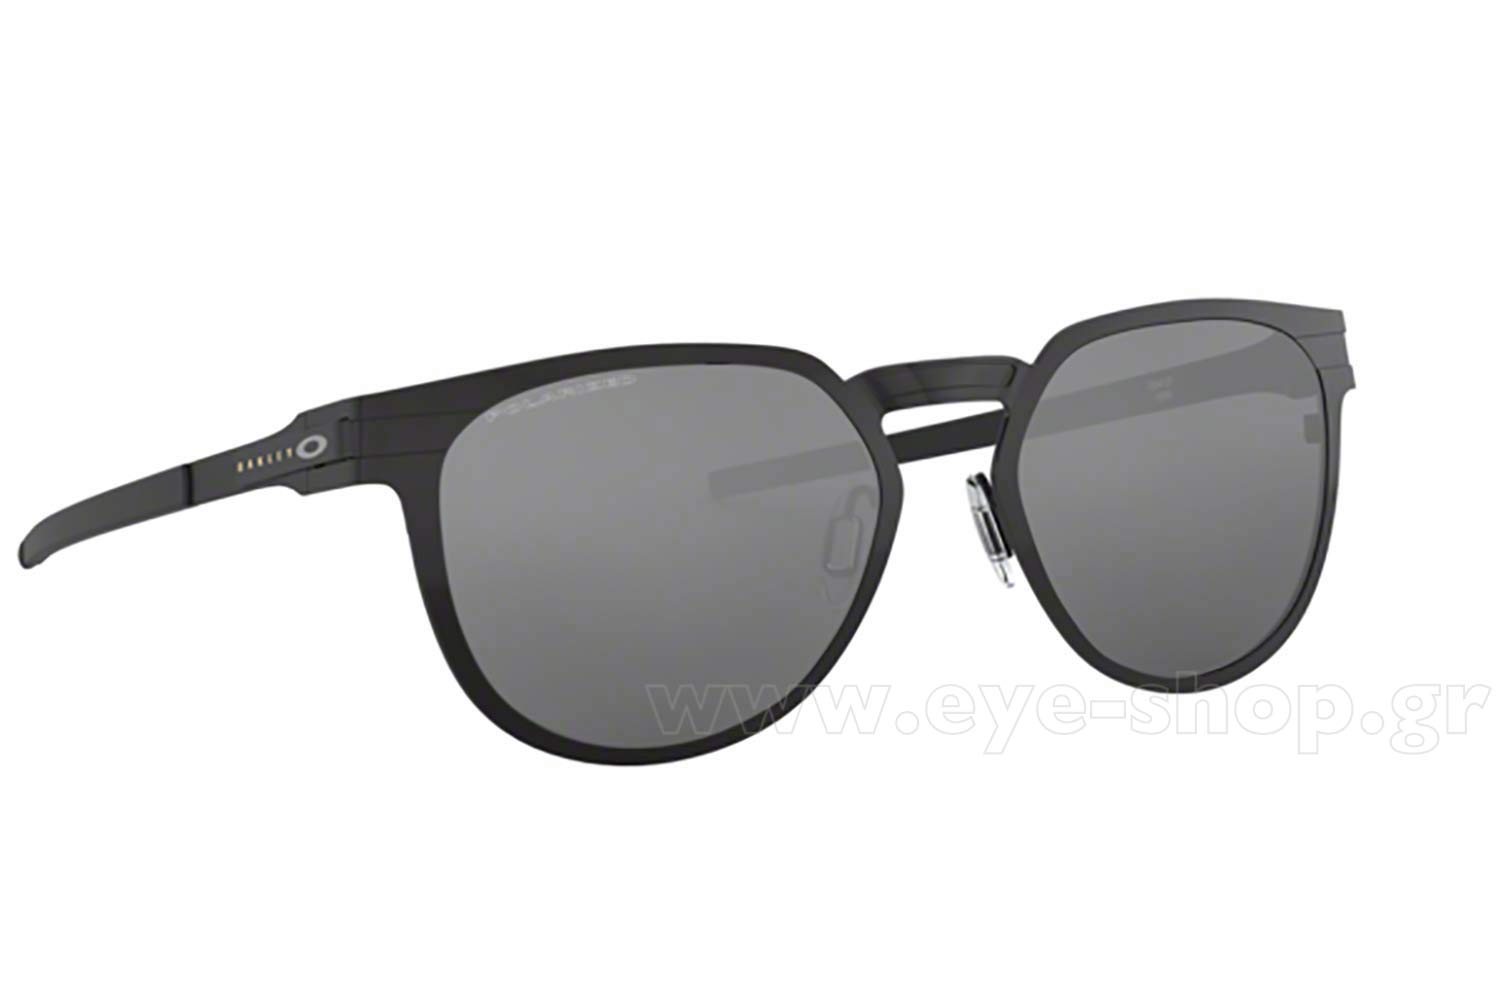 Γυαλιά Oakley Diecutter 4137 05 black iridium polarized